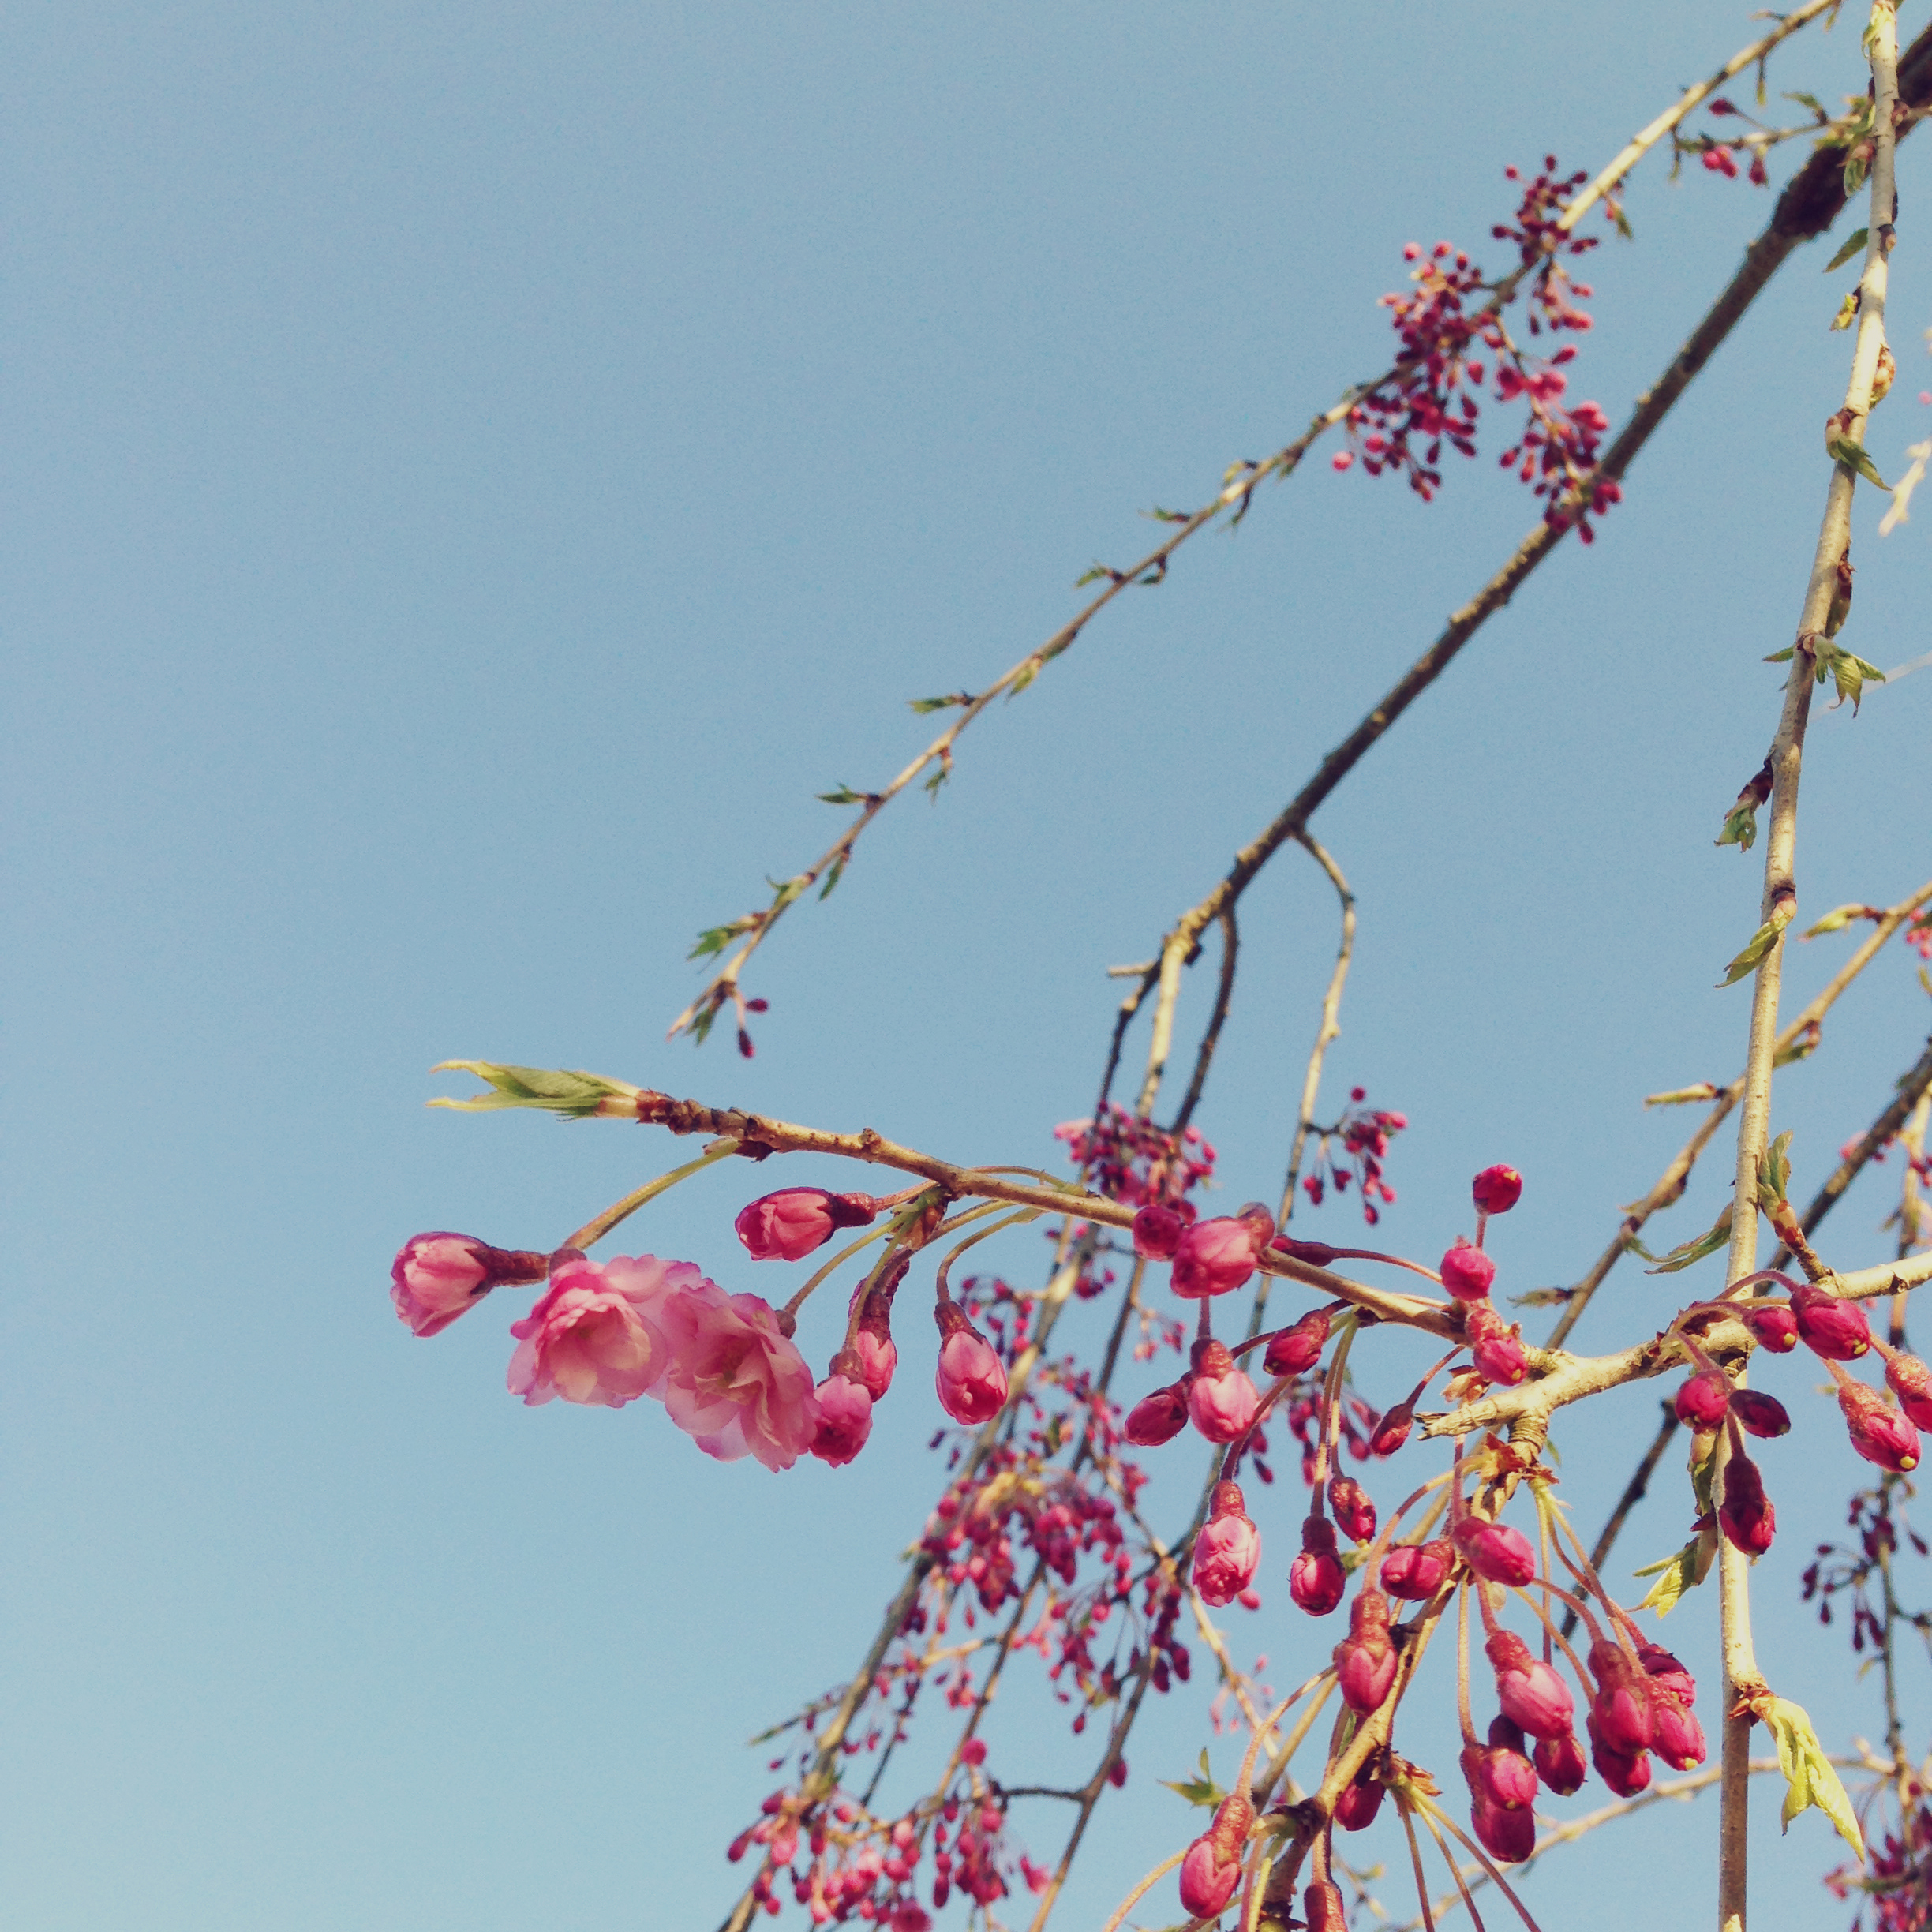 #CILoves Spring Blooms | Danielle